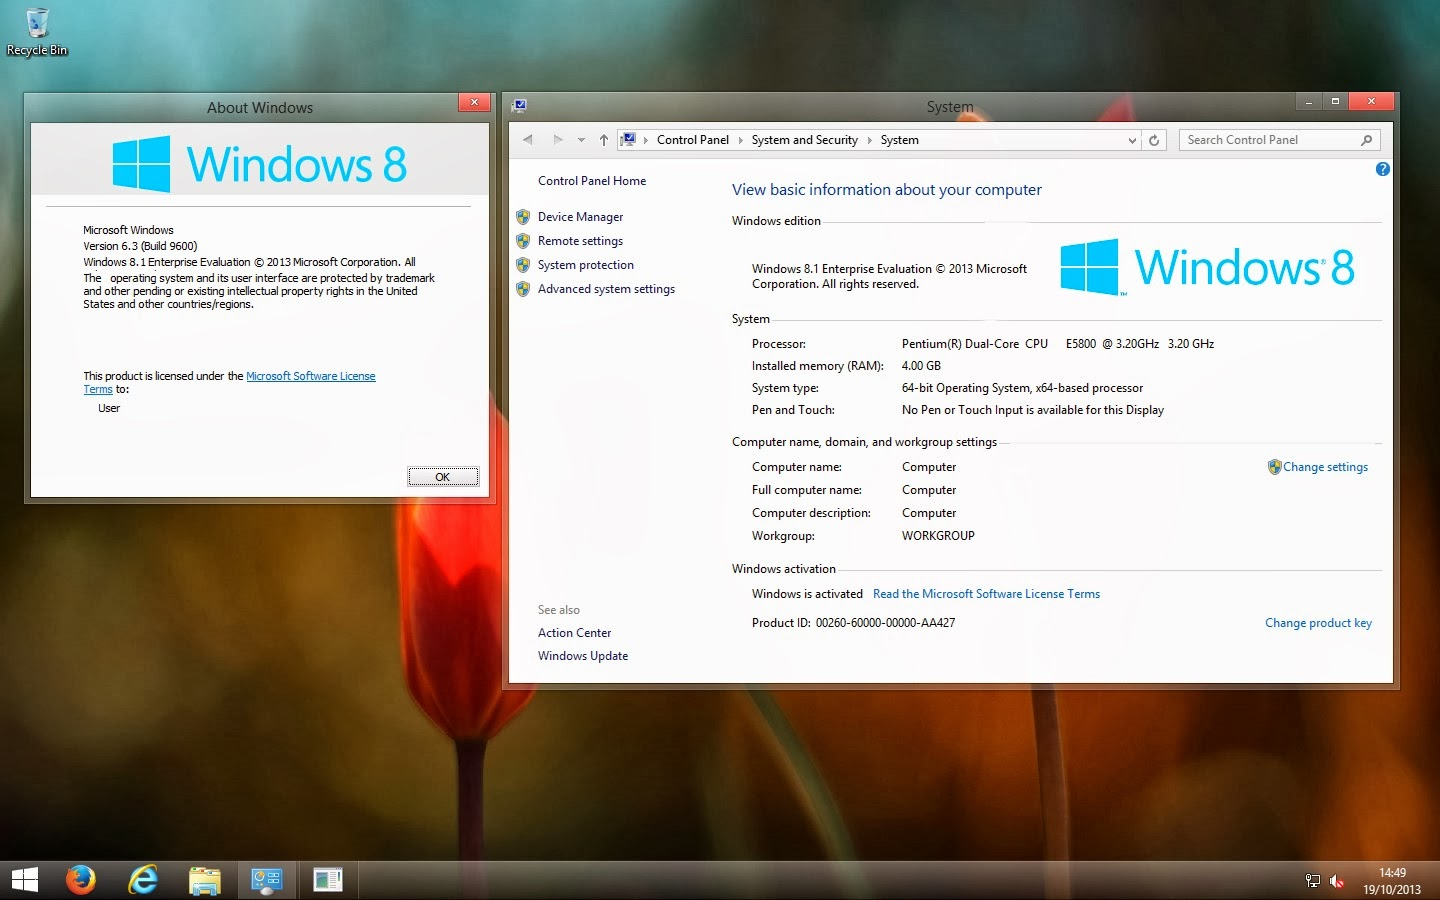 How to Remove watermark from Windows 8 1 Enterprise